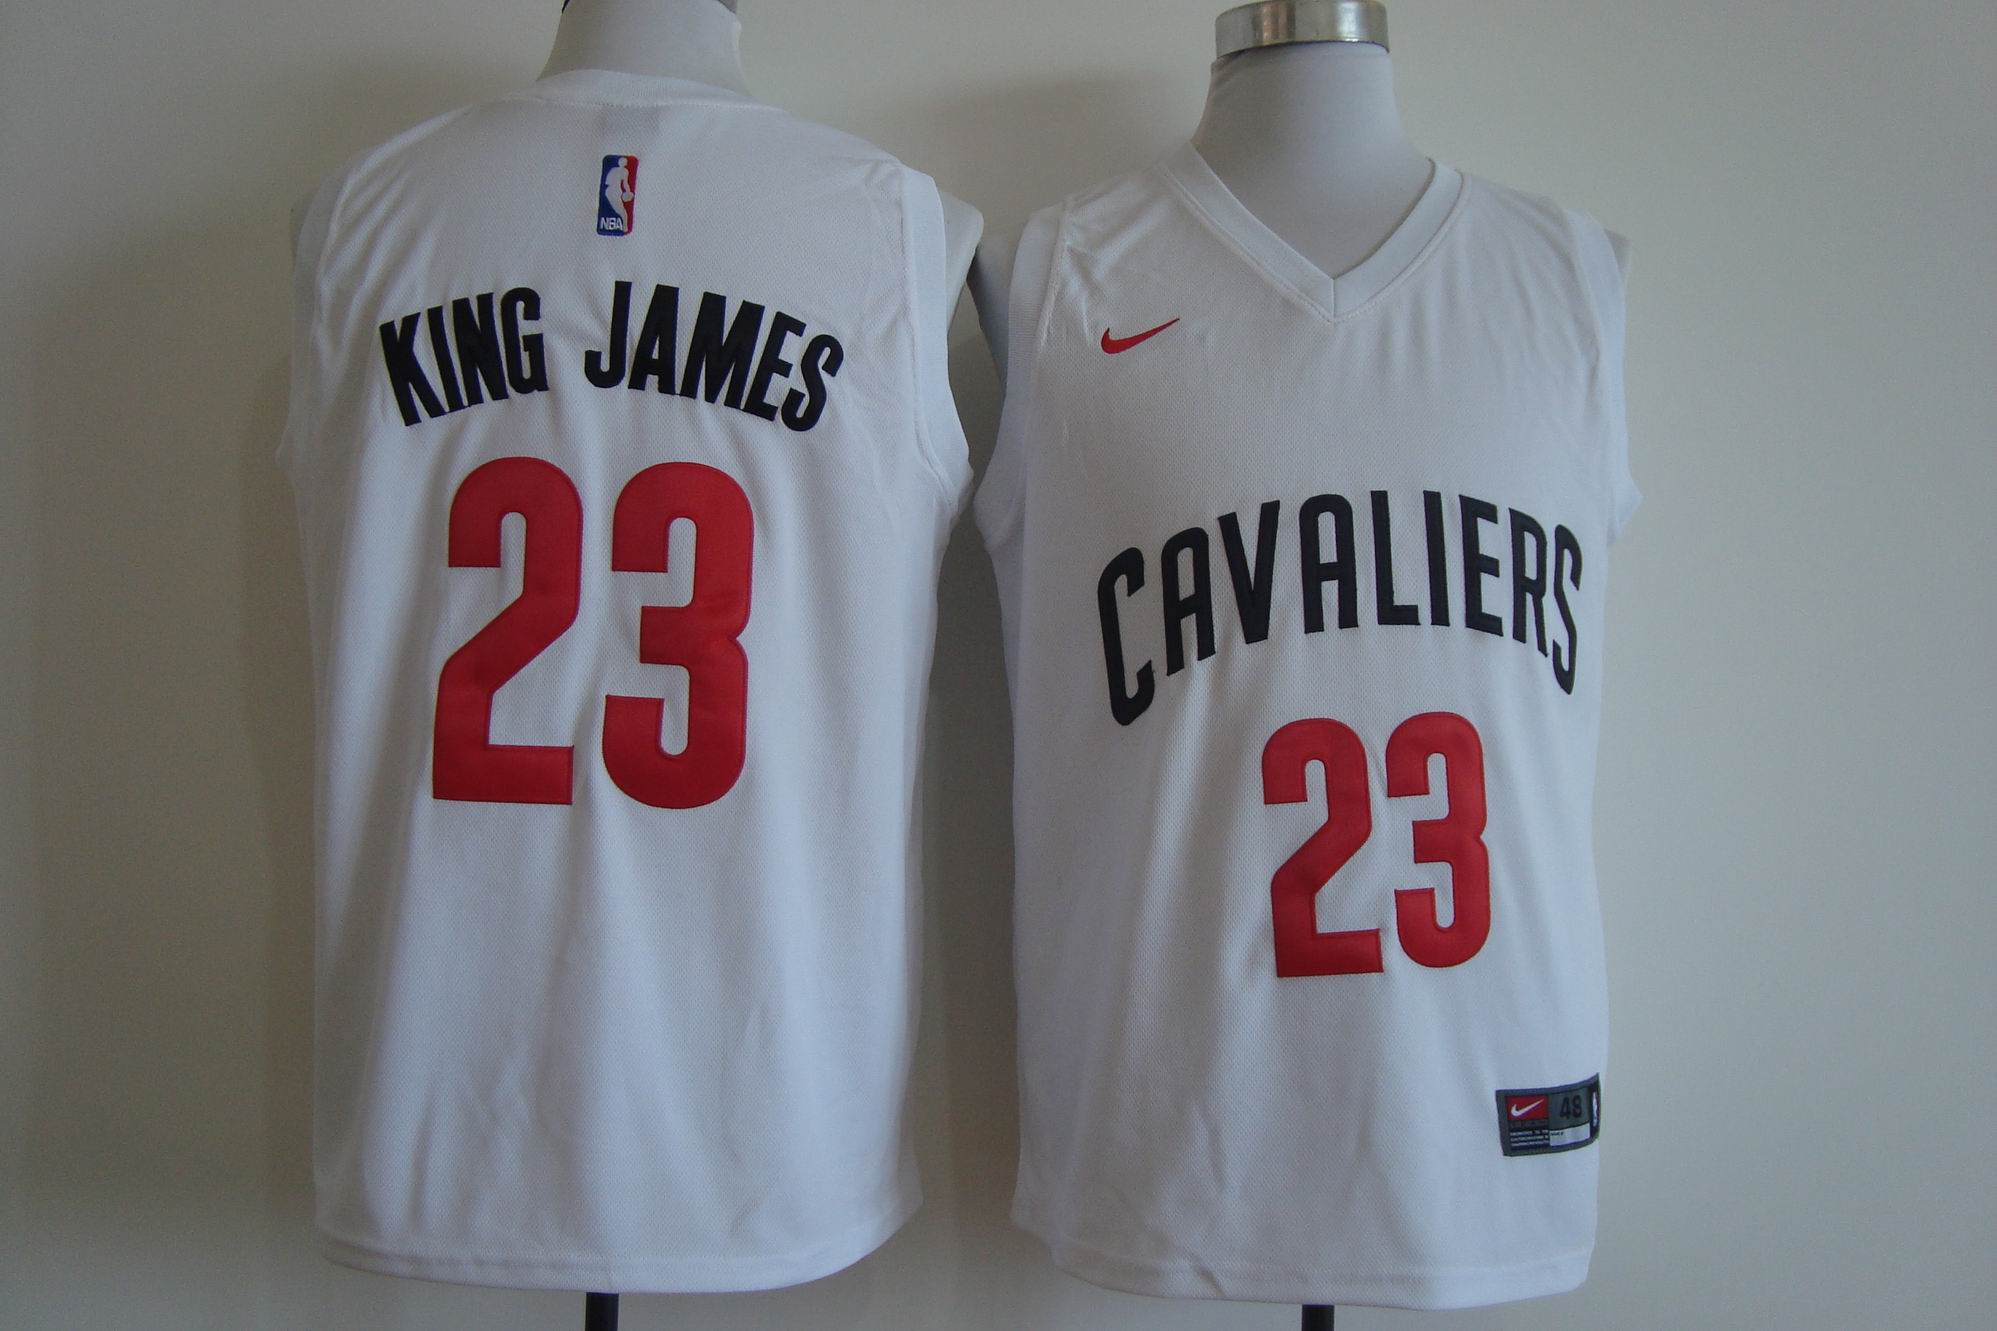 Men's Nike Cleveland Cavaliers #23 LeBron James White King James Stitched NBA Jersey